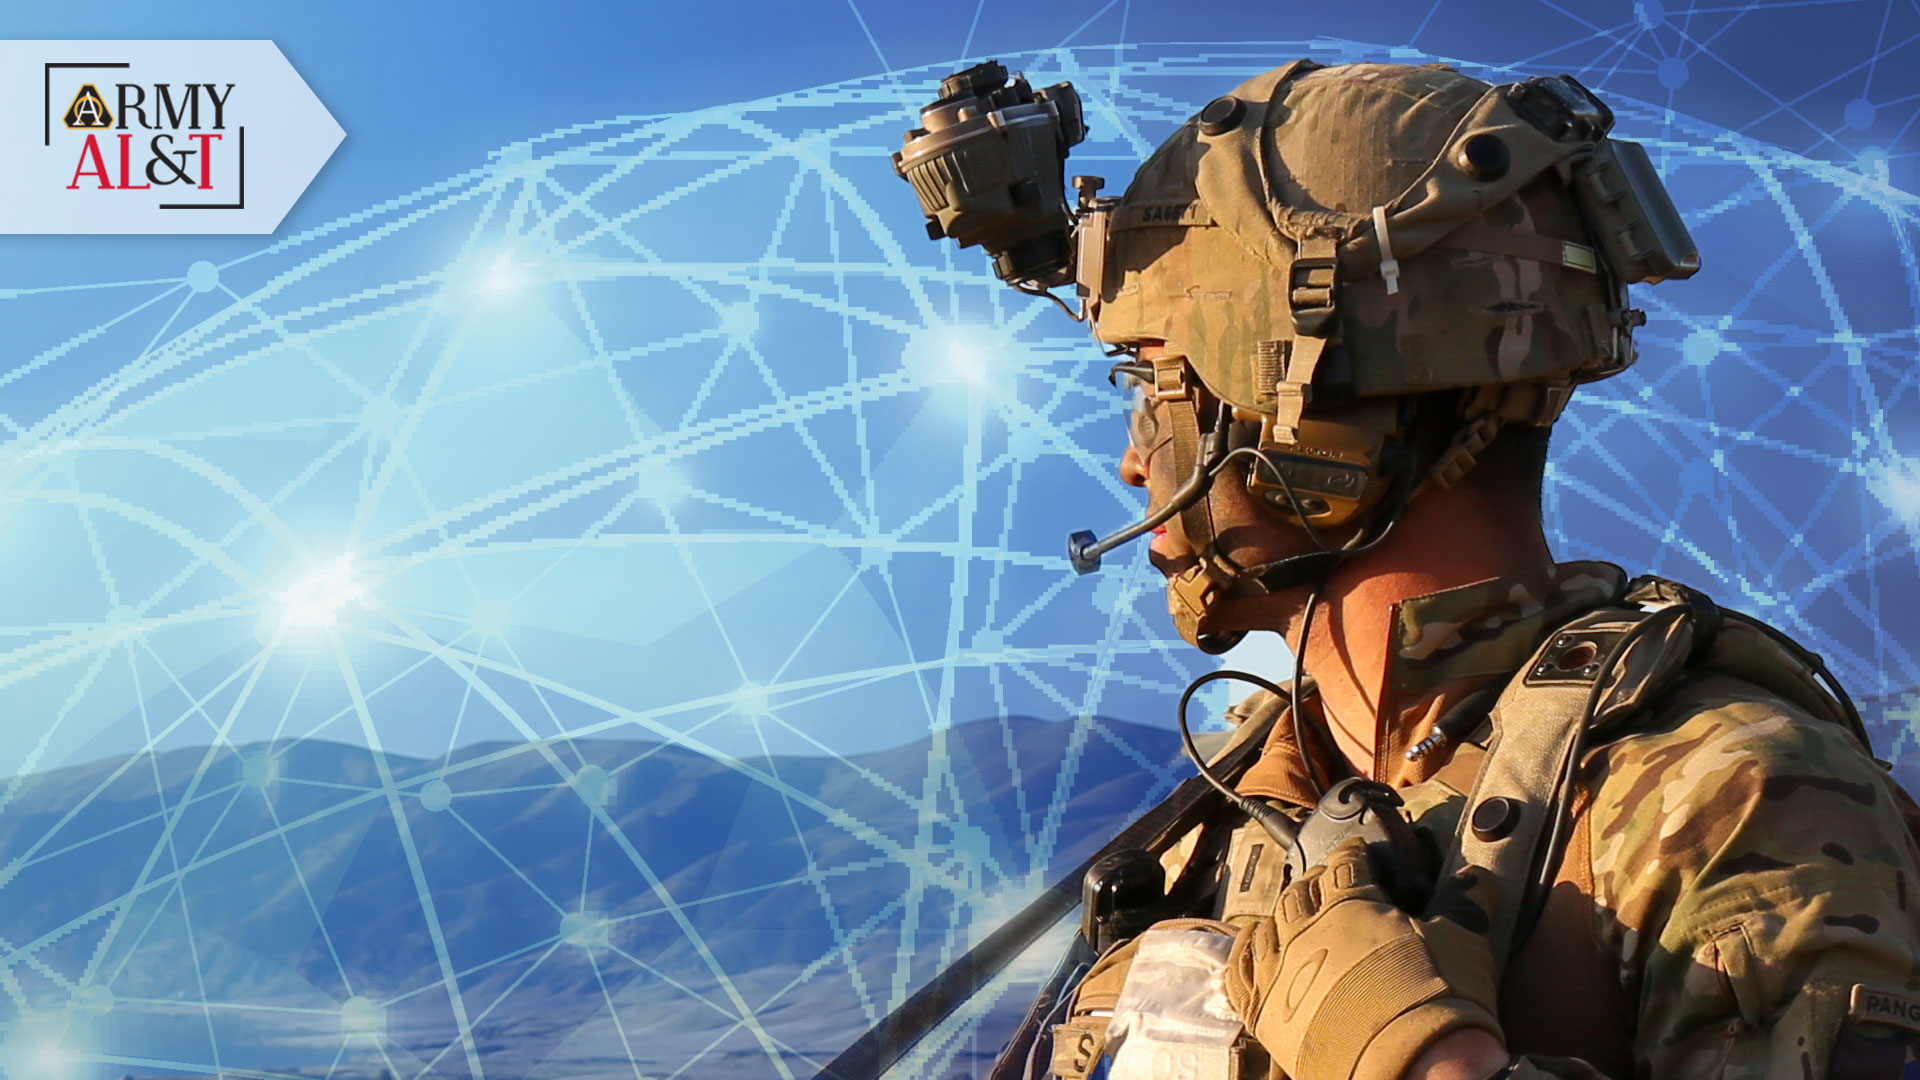 The need for interoperability standards Army AL&T